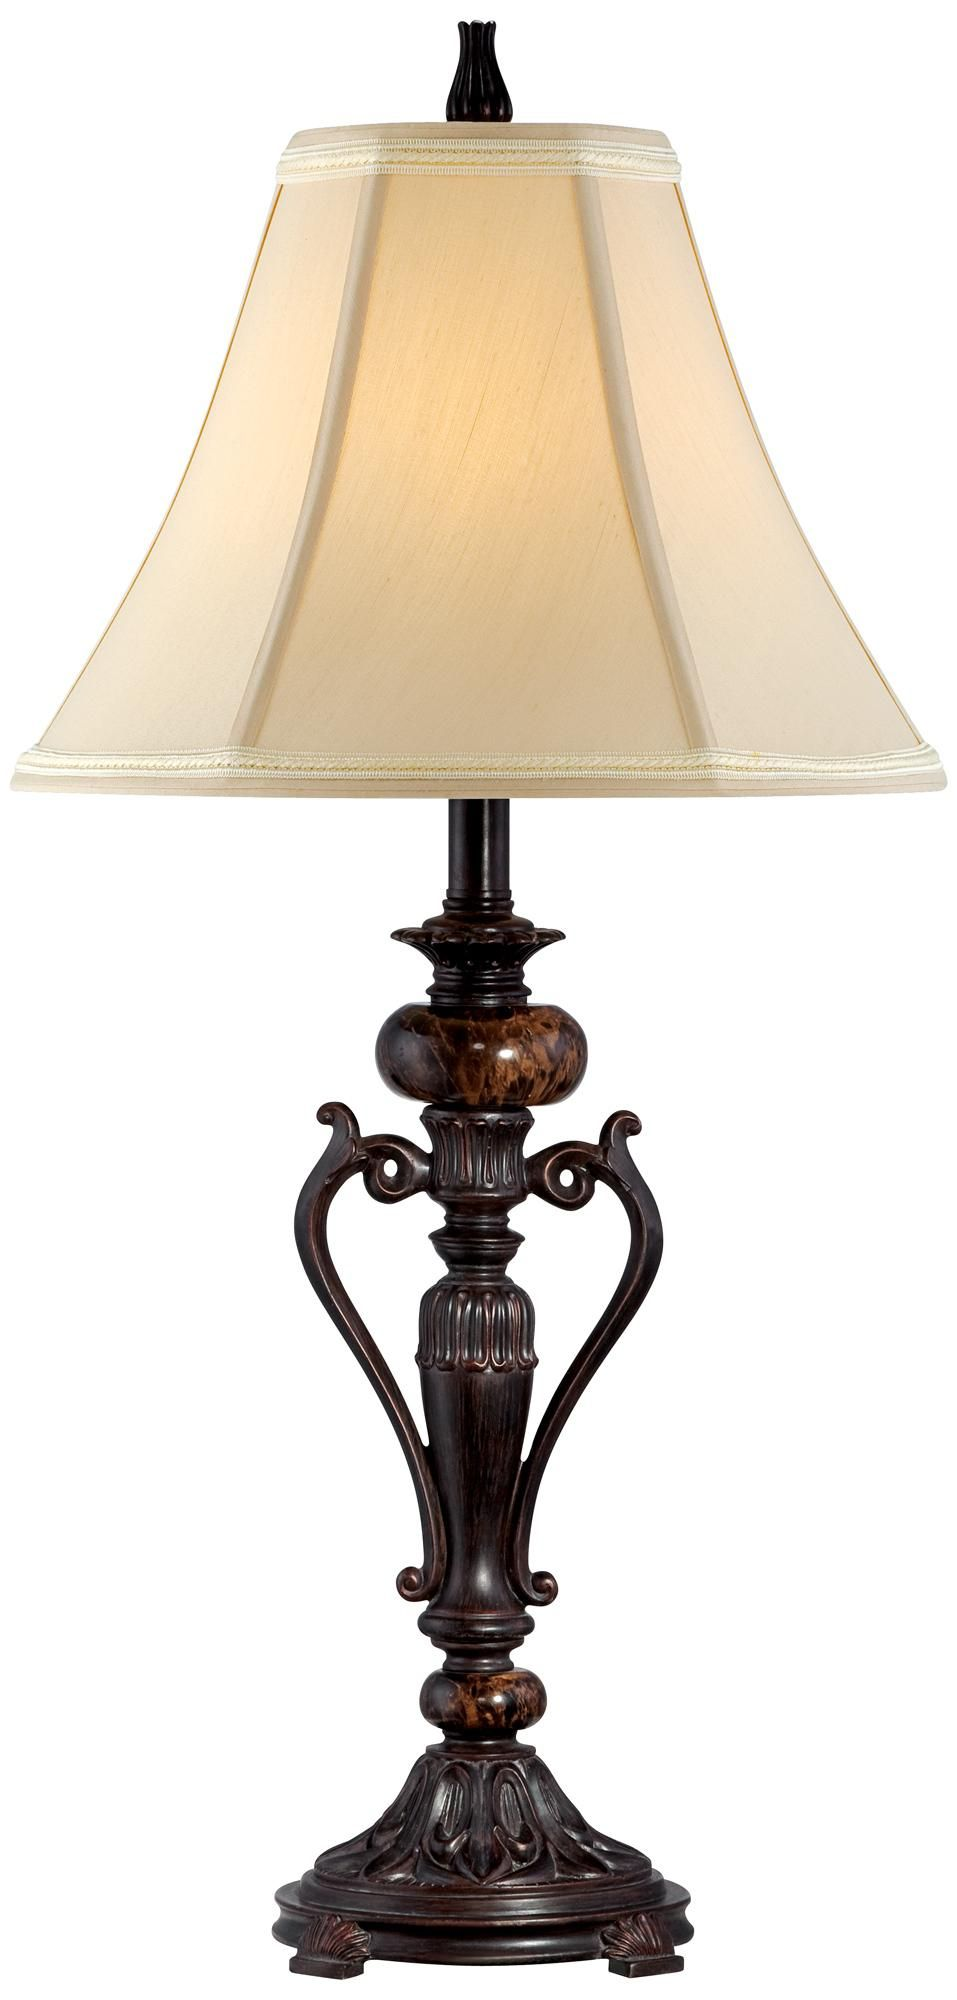 Kathy Ireland Amor Collection Accent Table Lamp In Bronze R9415